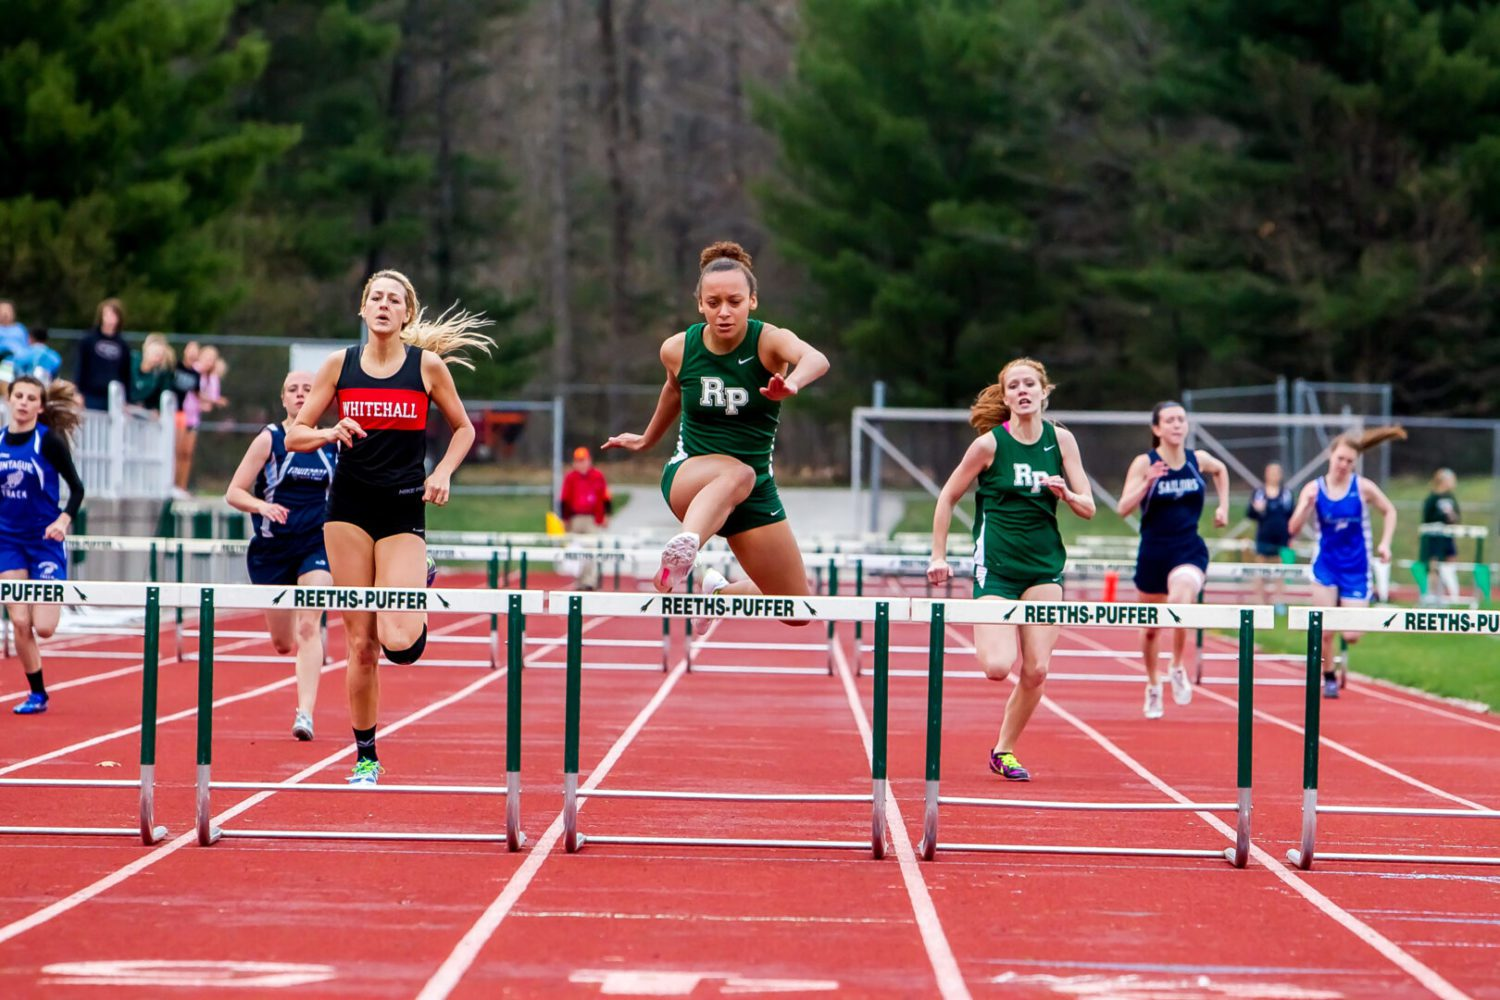 14th Annual Rocket Invite set for area track teams Friday